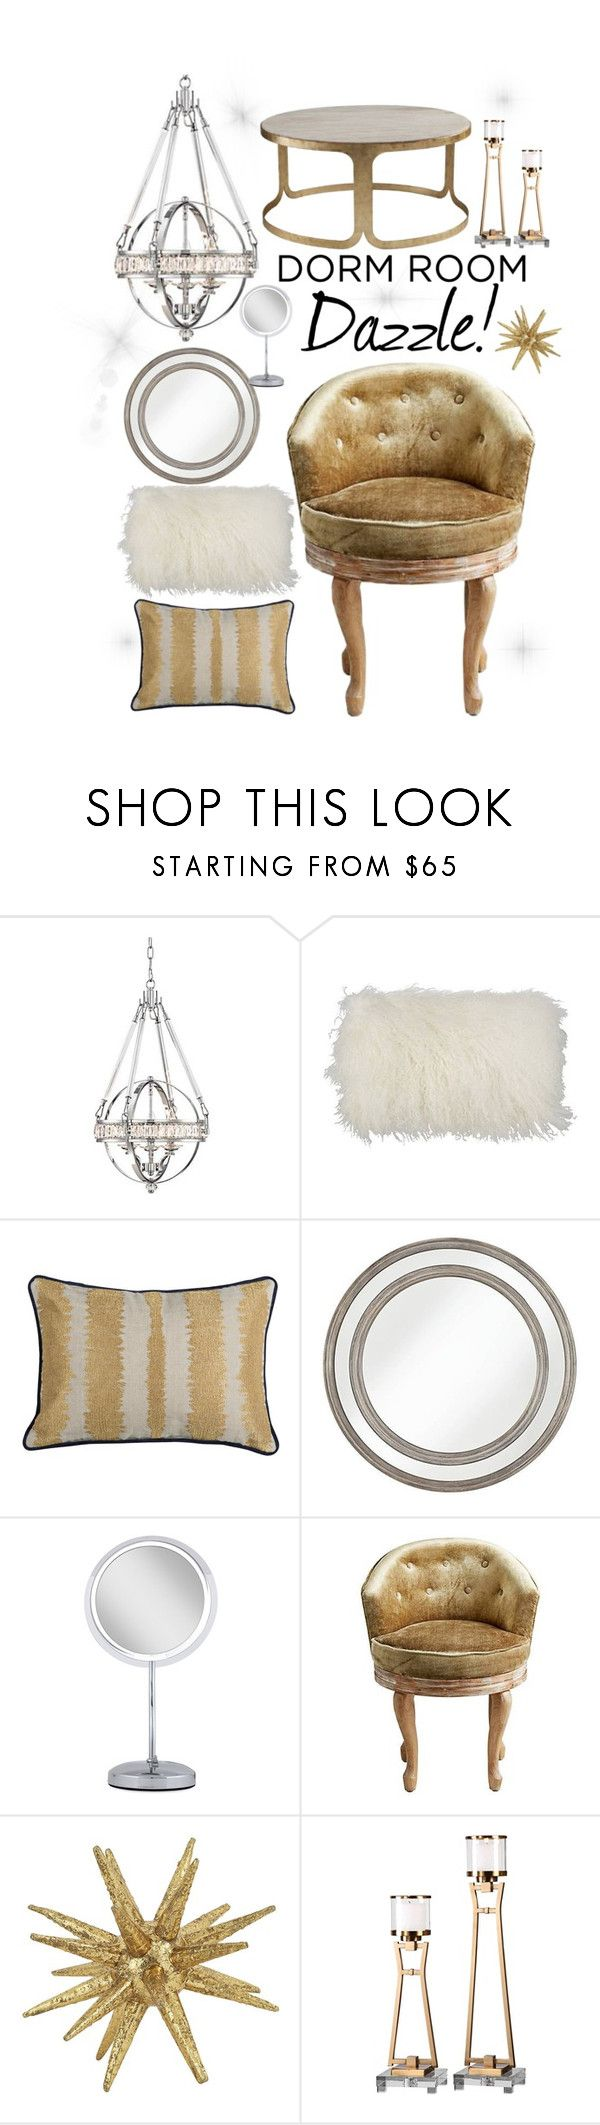 dorm room dazzle by lampsplus liked on polyvore featuring interior interiors - Cyan Home Interior